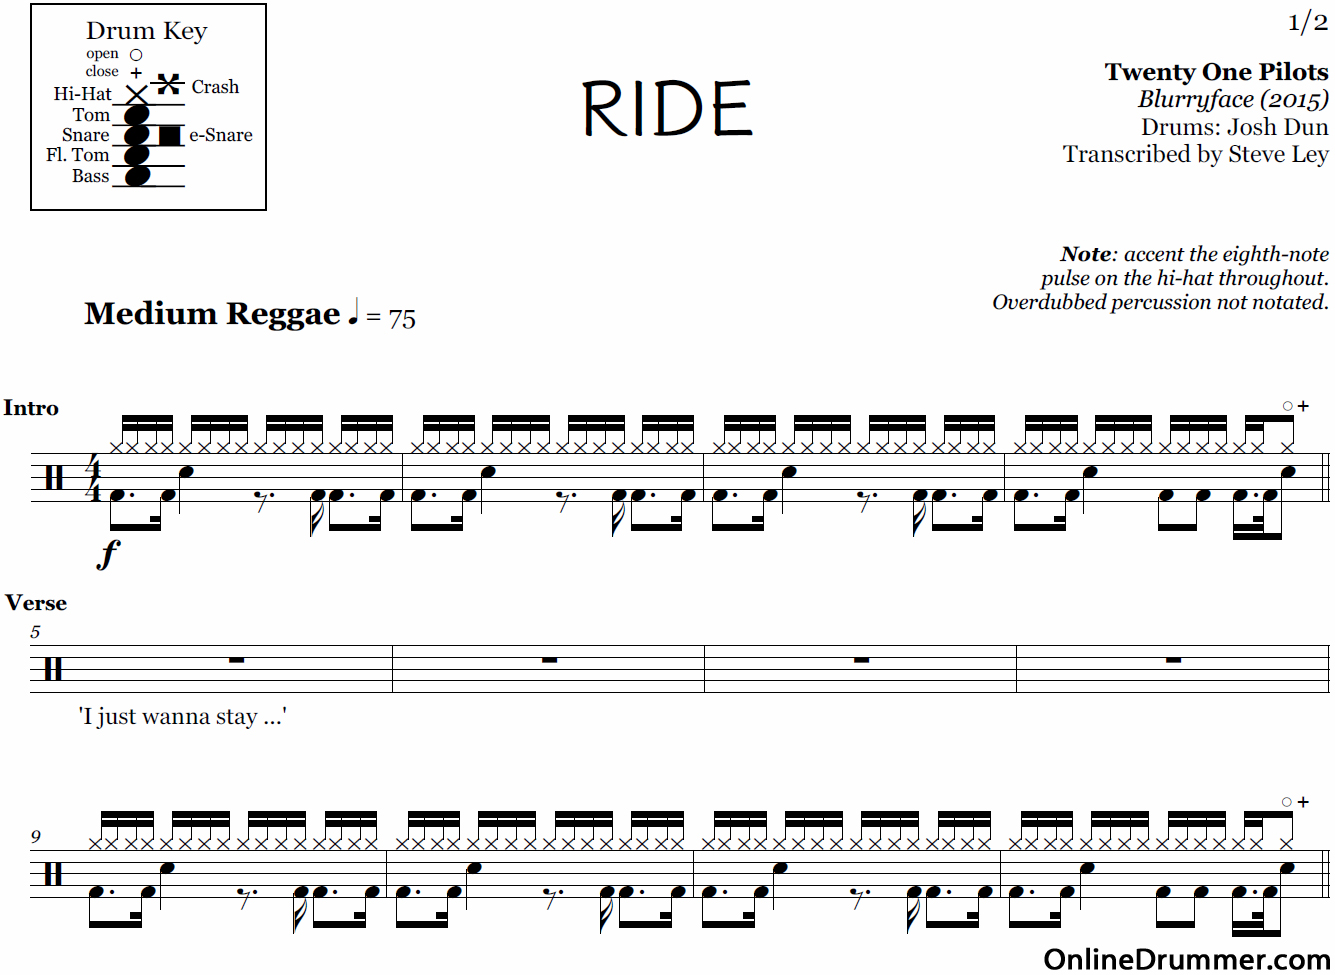 Ride - Twenty One Pilots u2013 Drum Sheet Music : OnlineDrummer.com